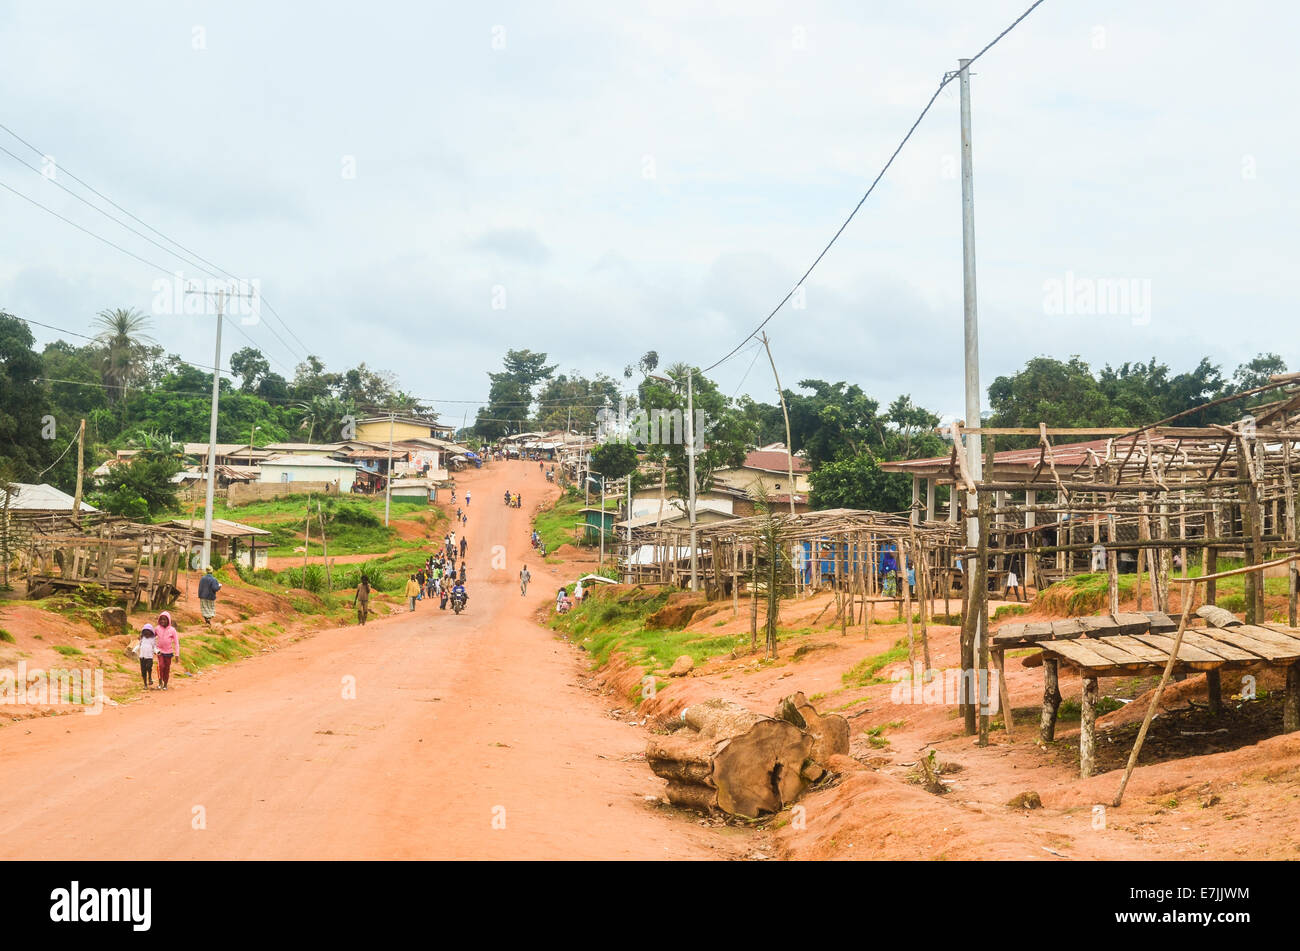 An empty traditional market in the countryside of northern Liberia, Nimba County, Africa - Stock Image